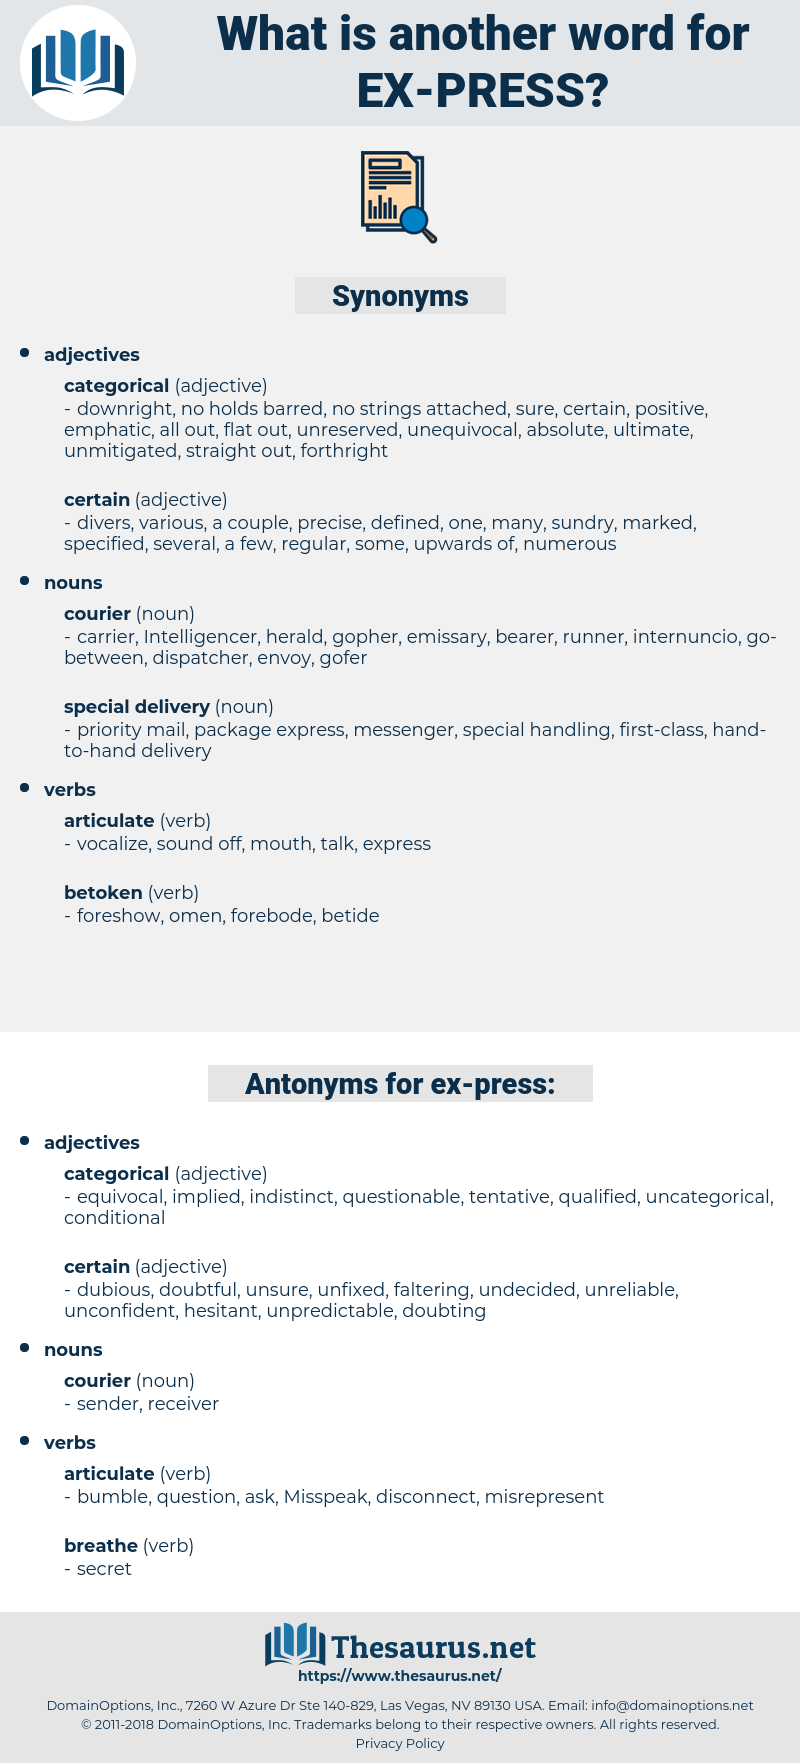 ex press, synonym ex press, another word for ex press, words like ex press, thesaurus ex press